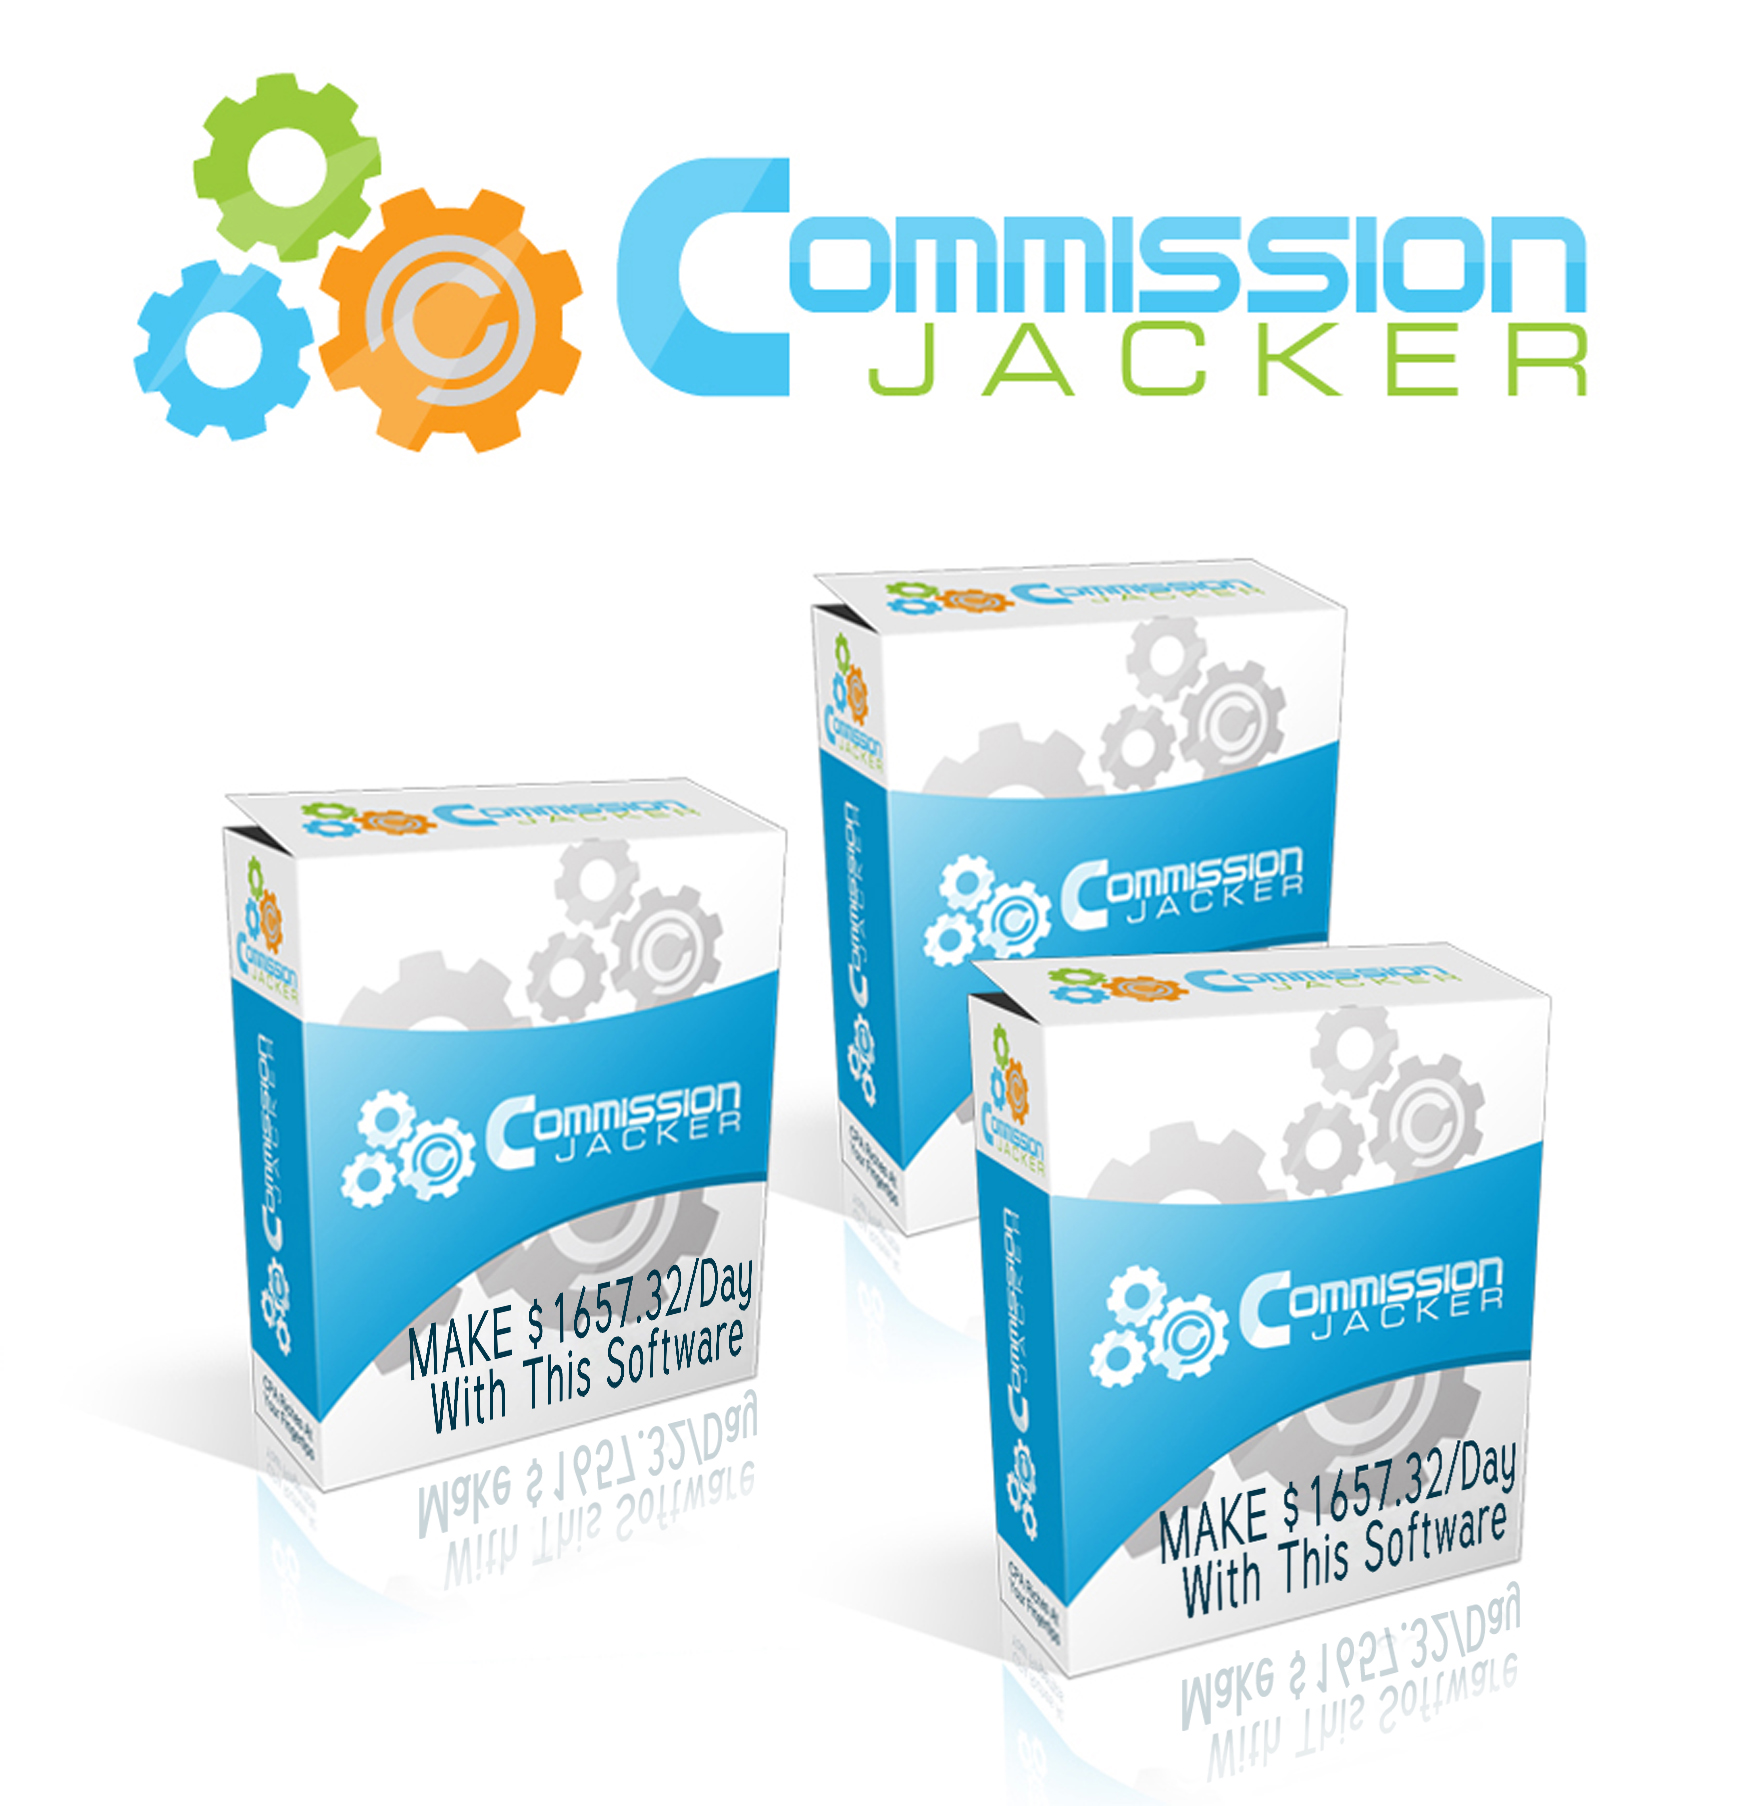 Commission Jacker 2.0 review